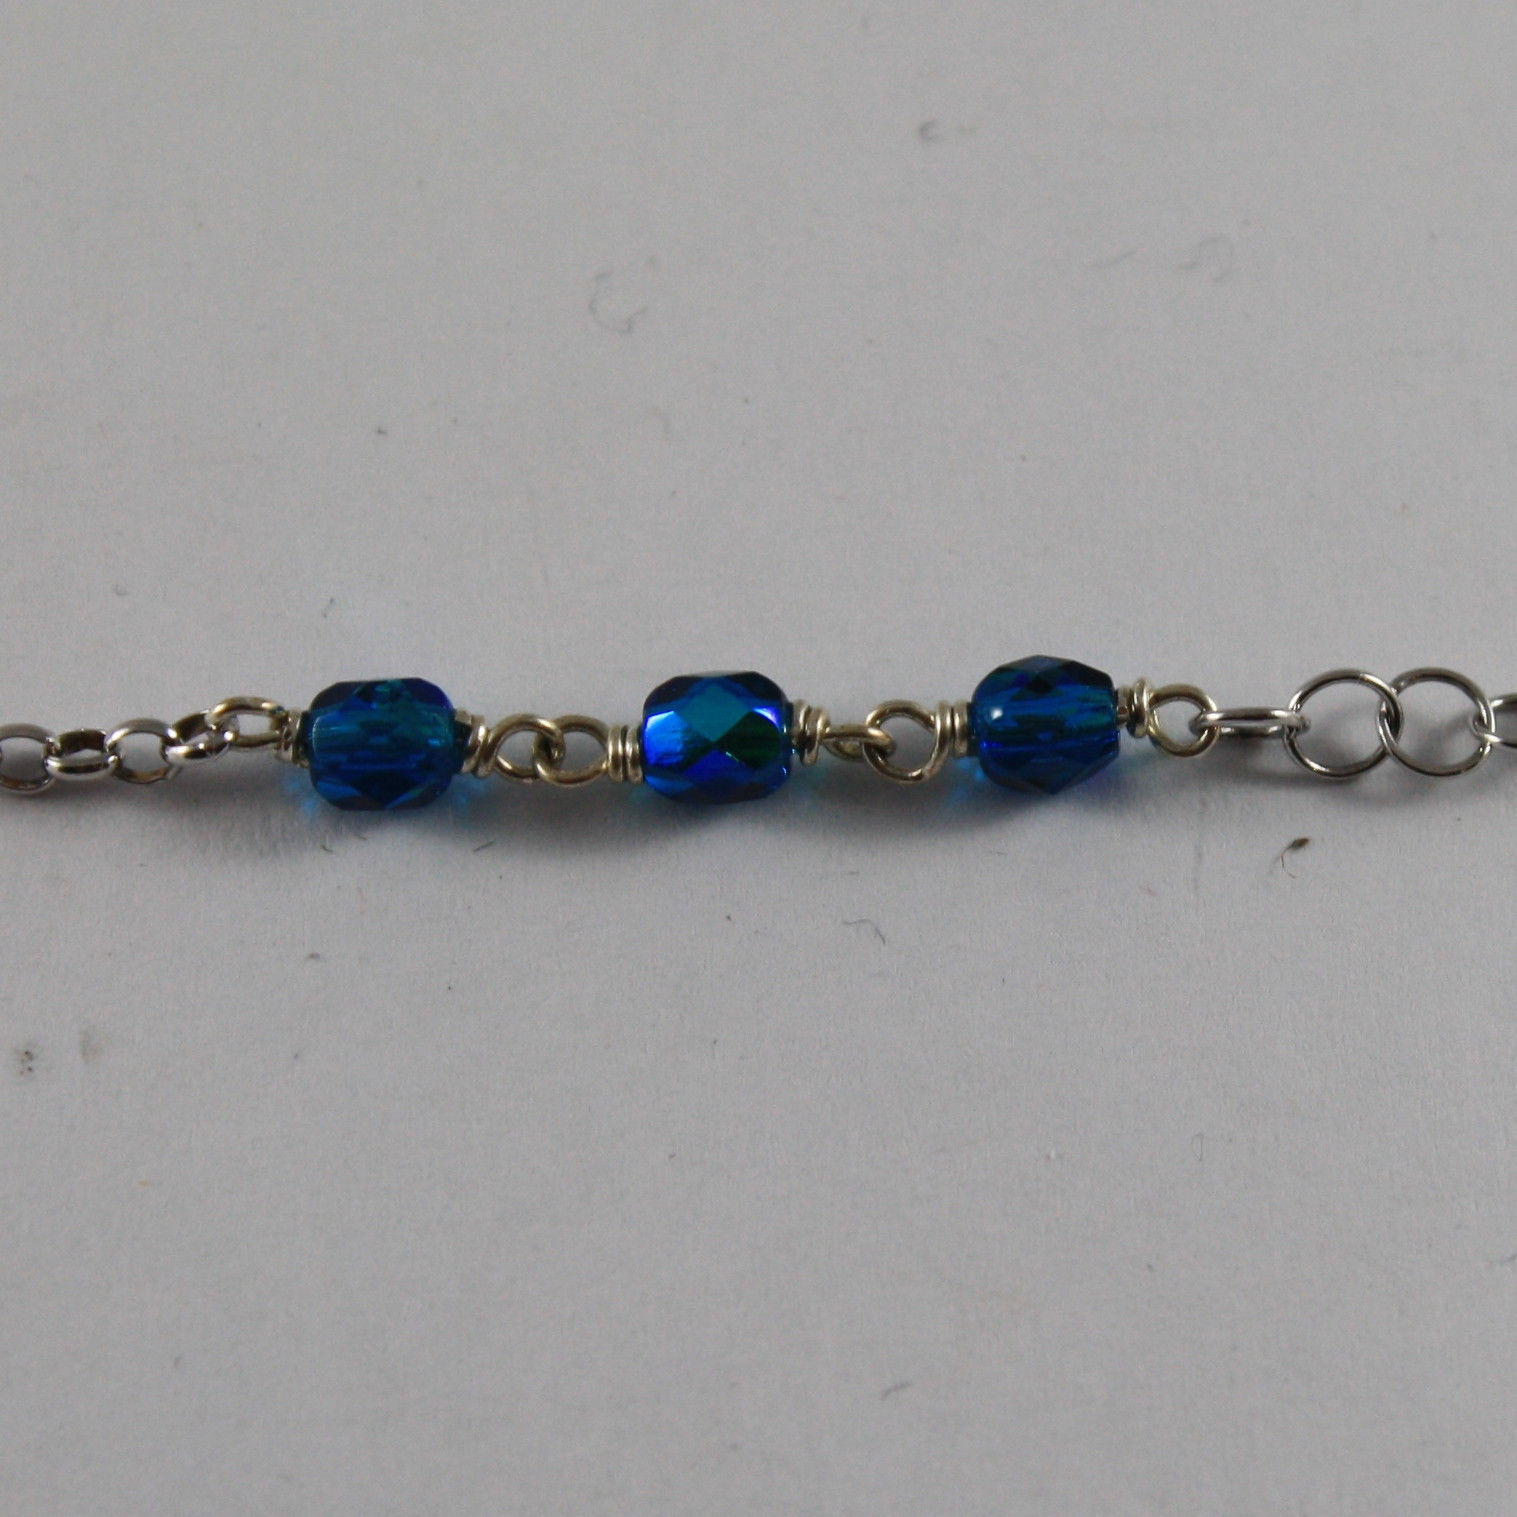 .925 SILVER RHODIUM NECKLACE WITH BLUE CRYSTALS AND LITTLE BOY SHAPED PENDANT